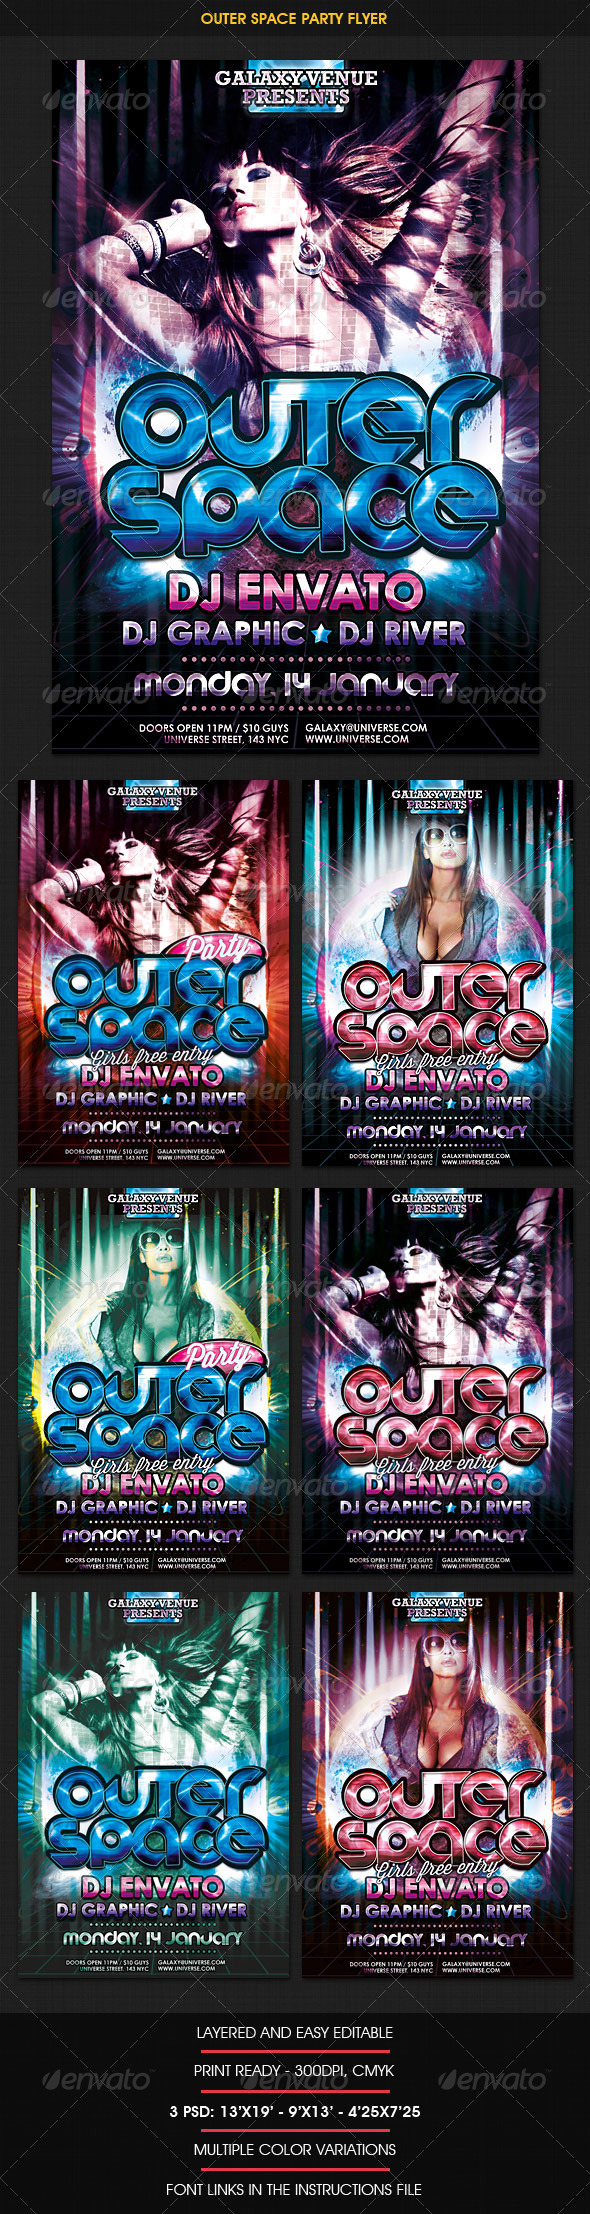 Dance Disco Party Flyer - Clubs & Parties Events